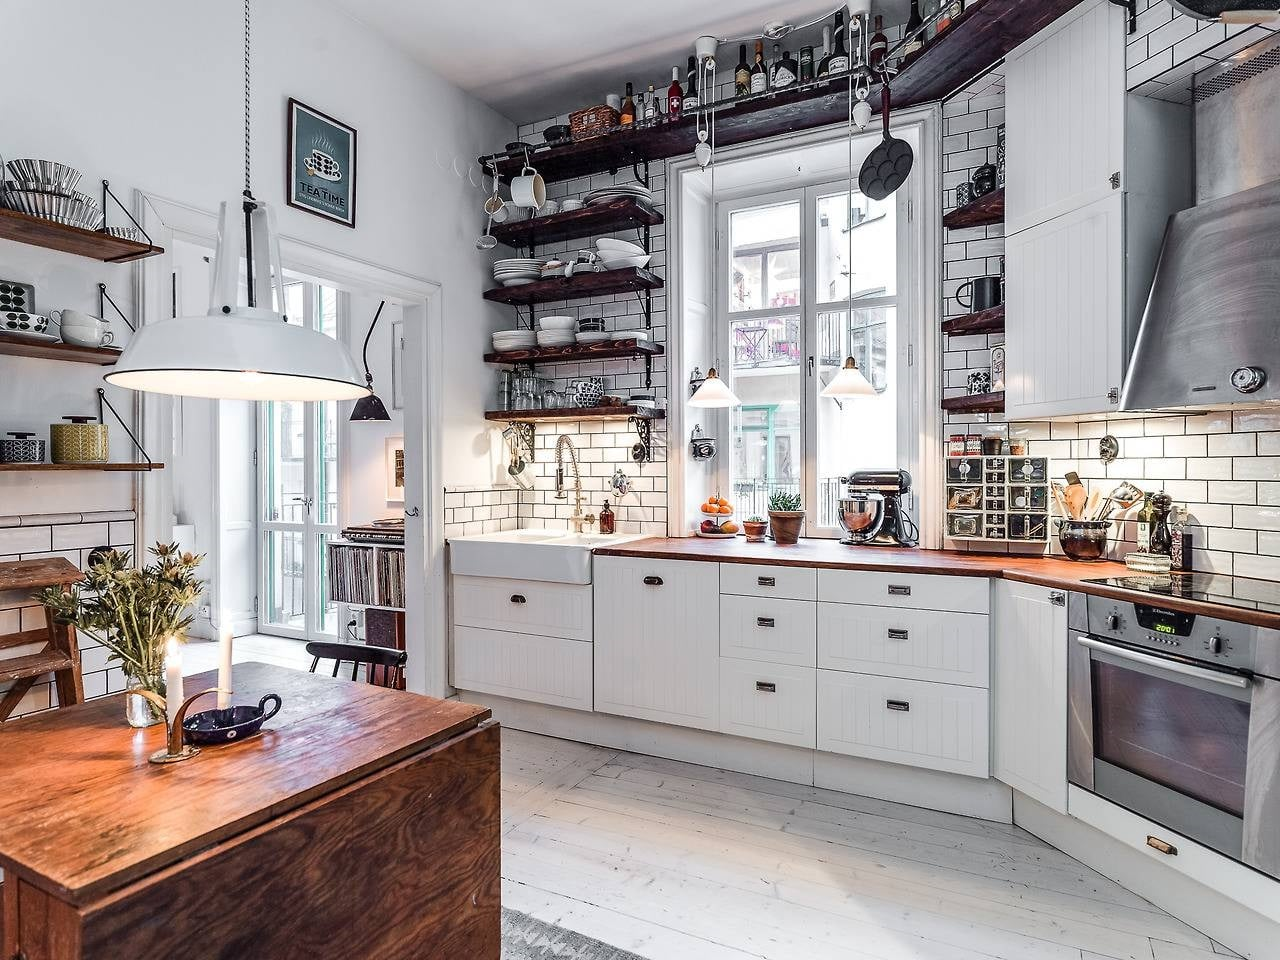 Hygge Interior Design Style and Life Philosophy: Cozy Danish Tradition. White colored kitchen with dark wooden open top shelves